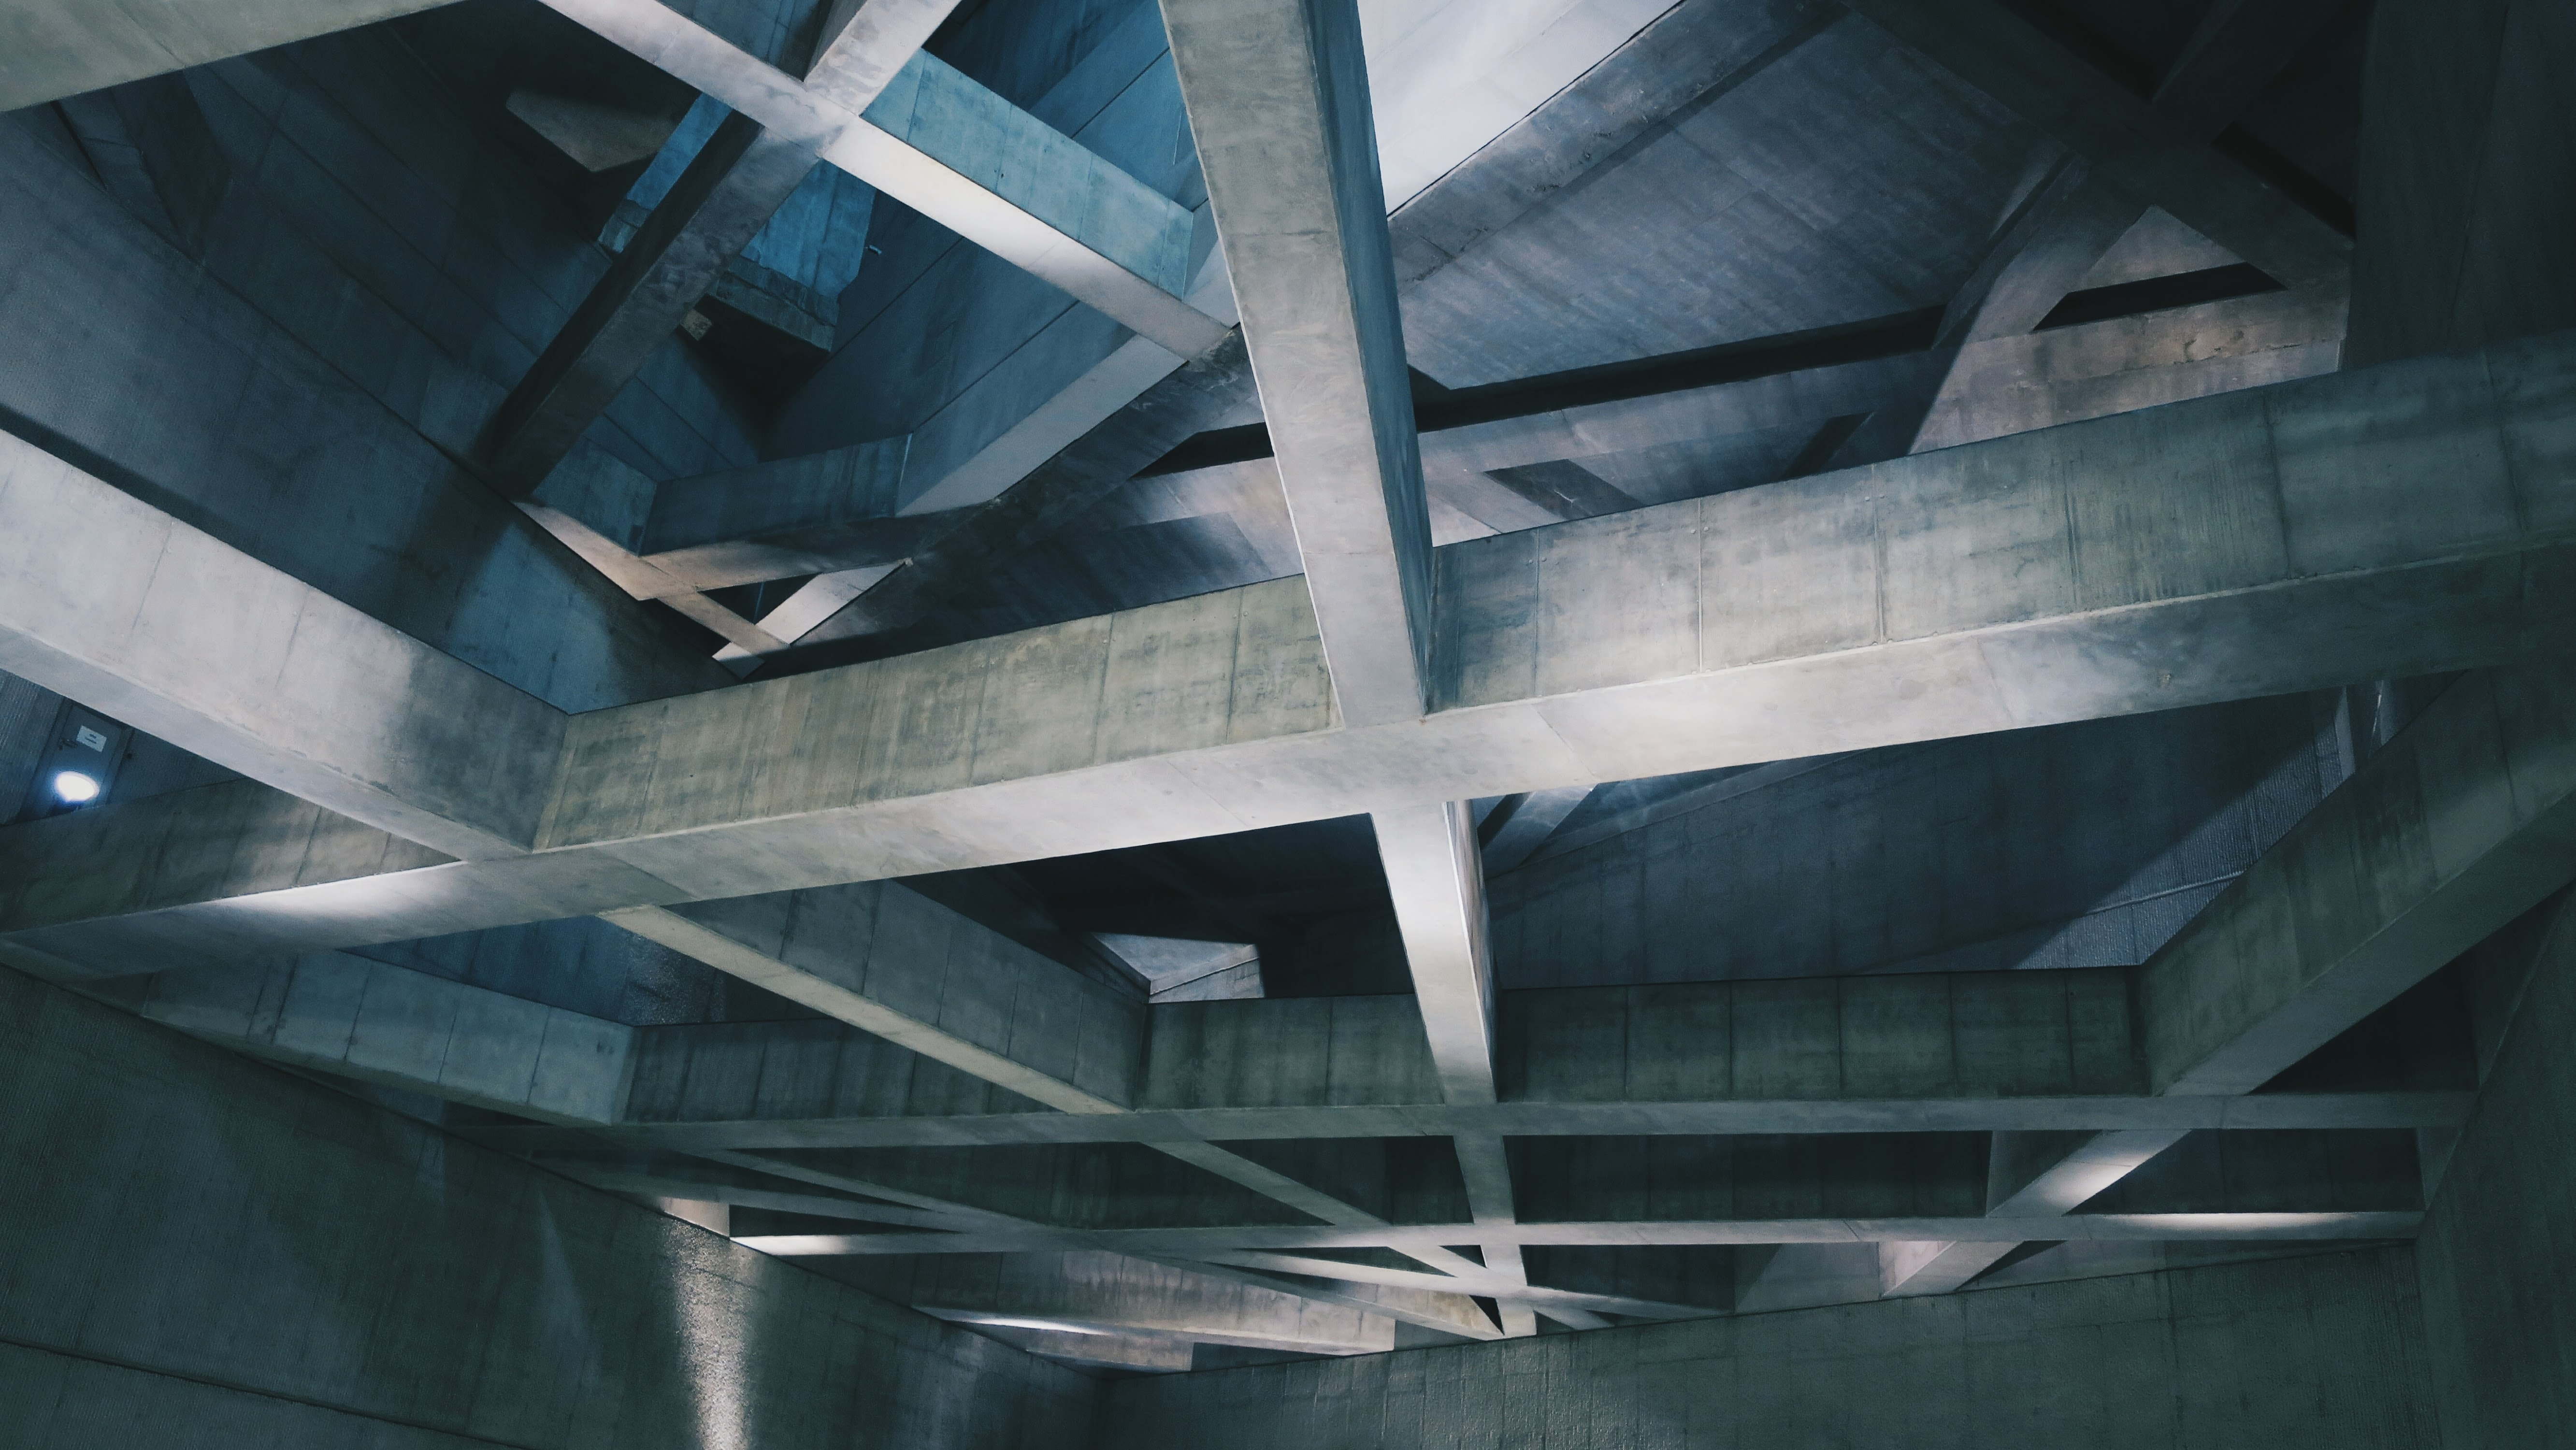 photo of brown wooden building ceiling